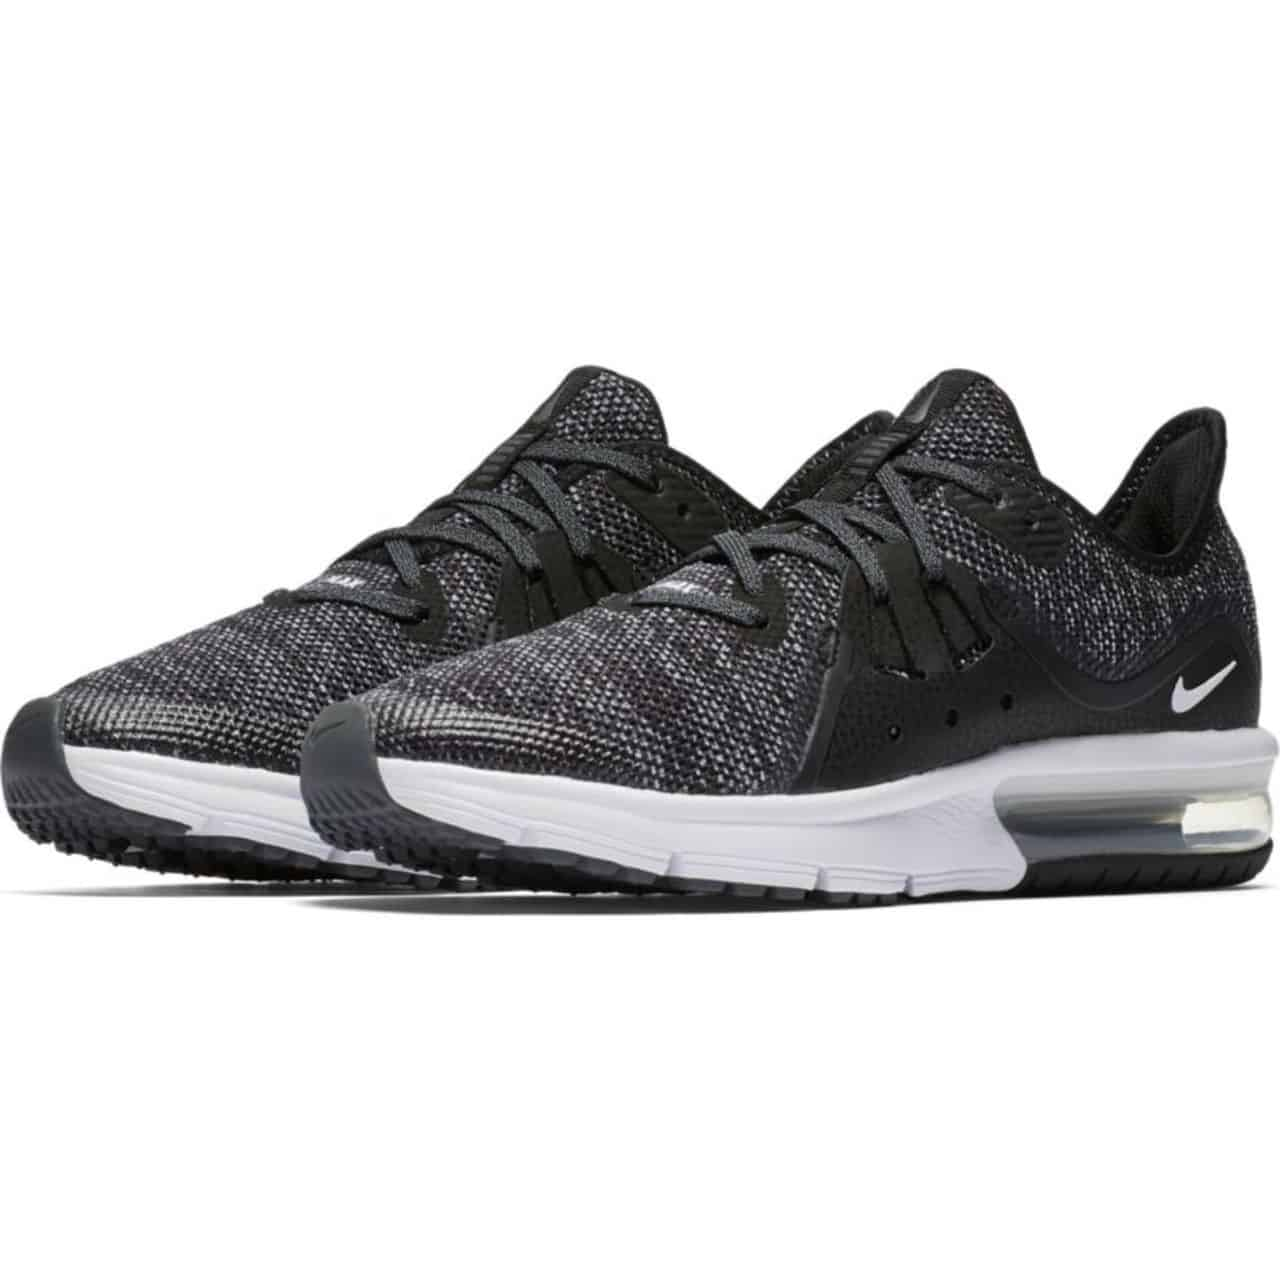 54ccc71dc3dd ... where can i buy adidas originali nike air max sequent 3 gs 922884 001  f4def af97b ...